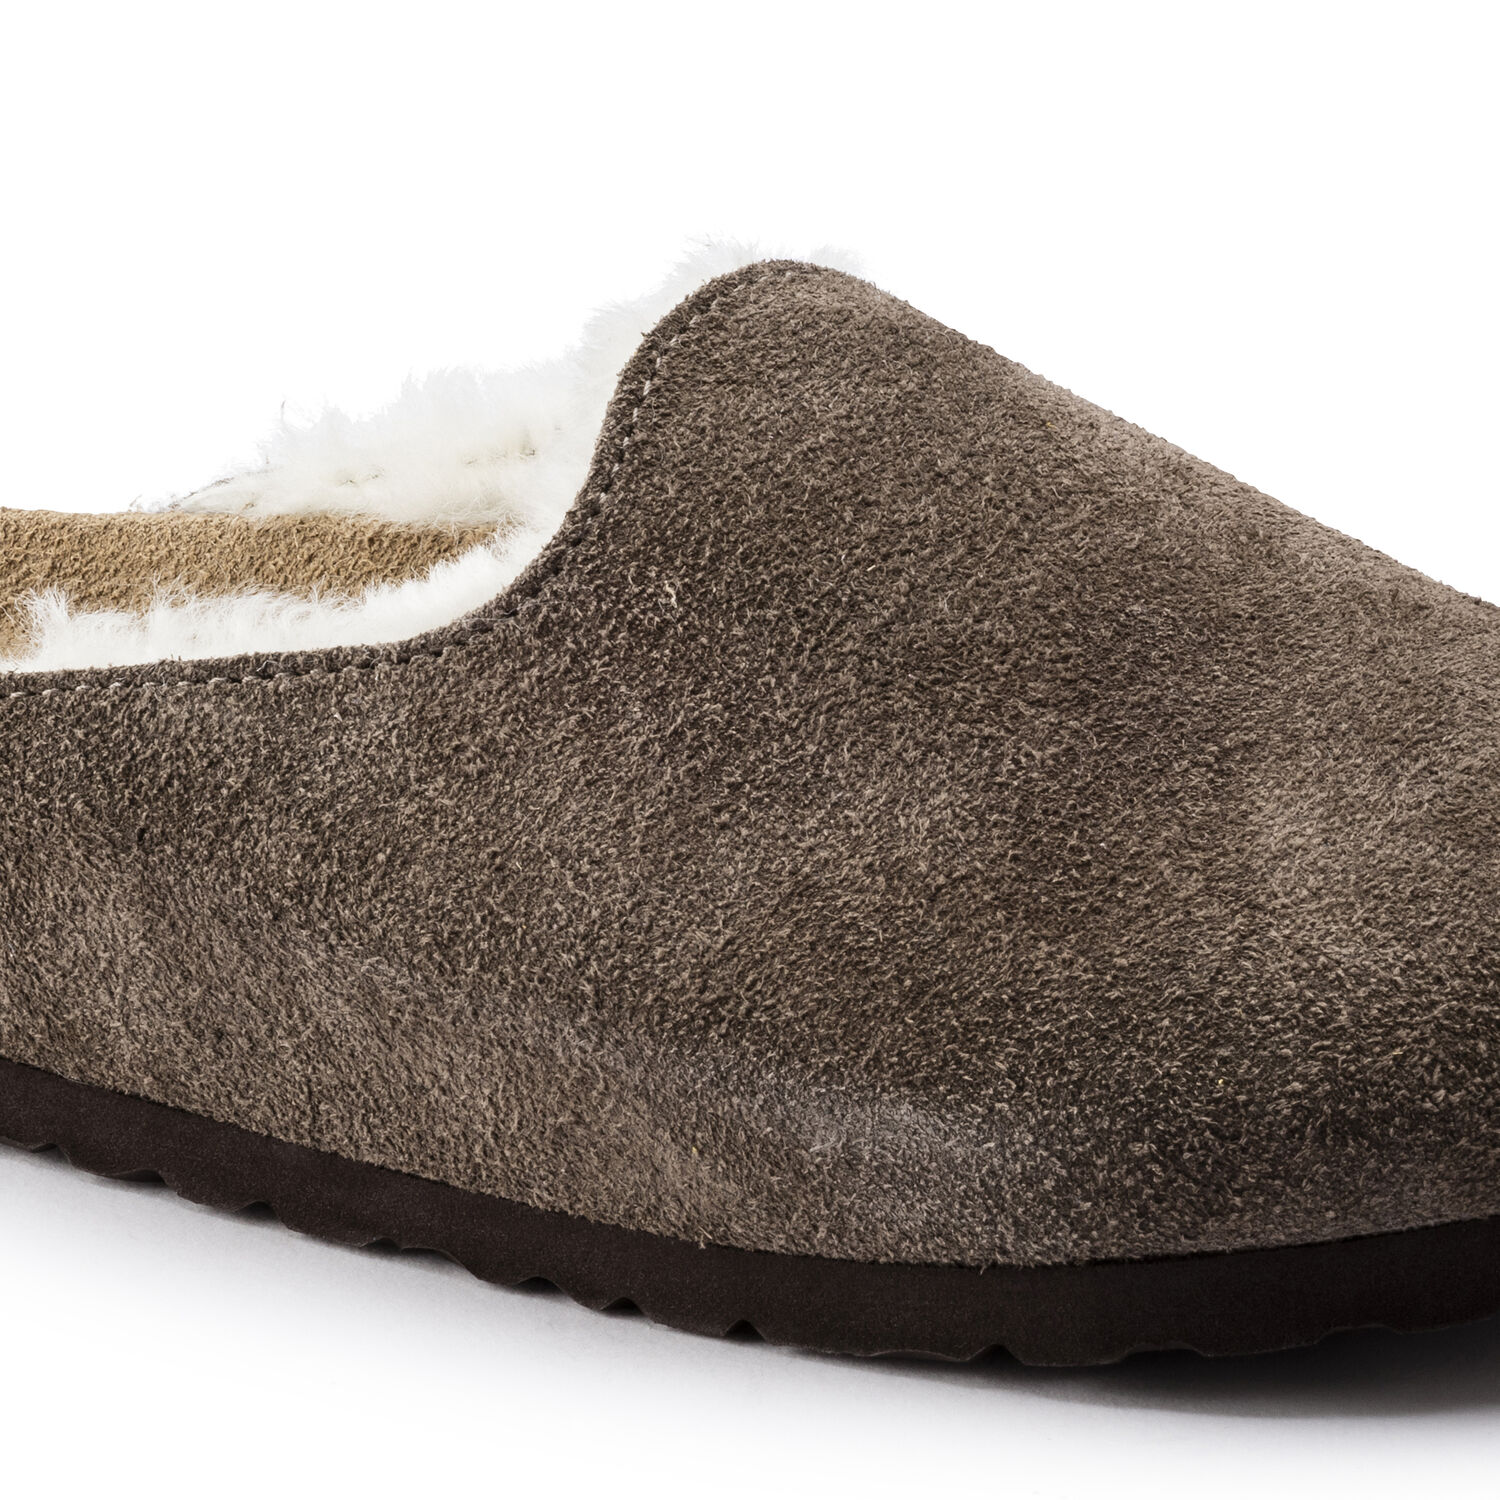 Amsterdam Shearling  Suede Leather